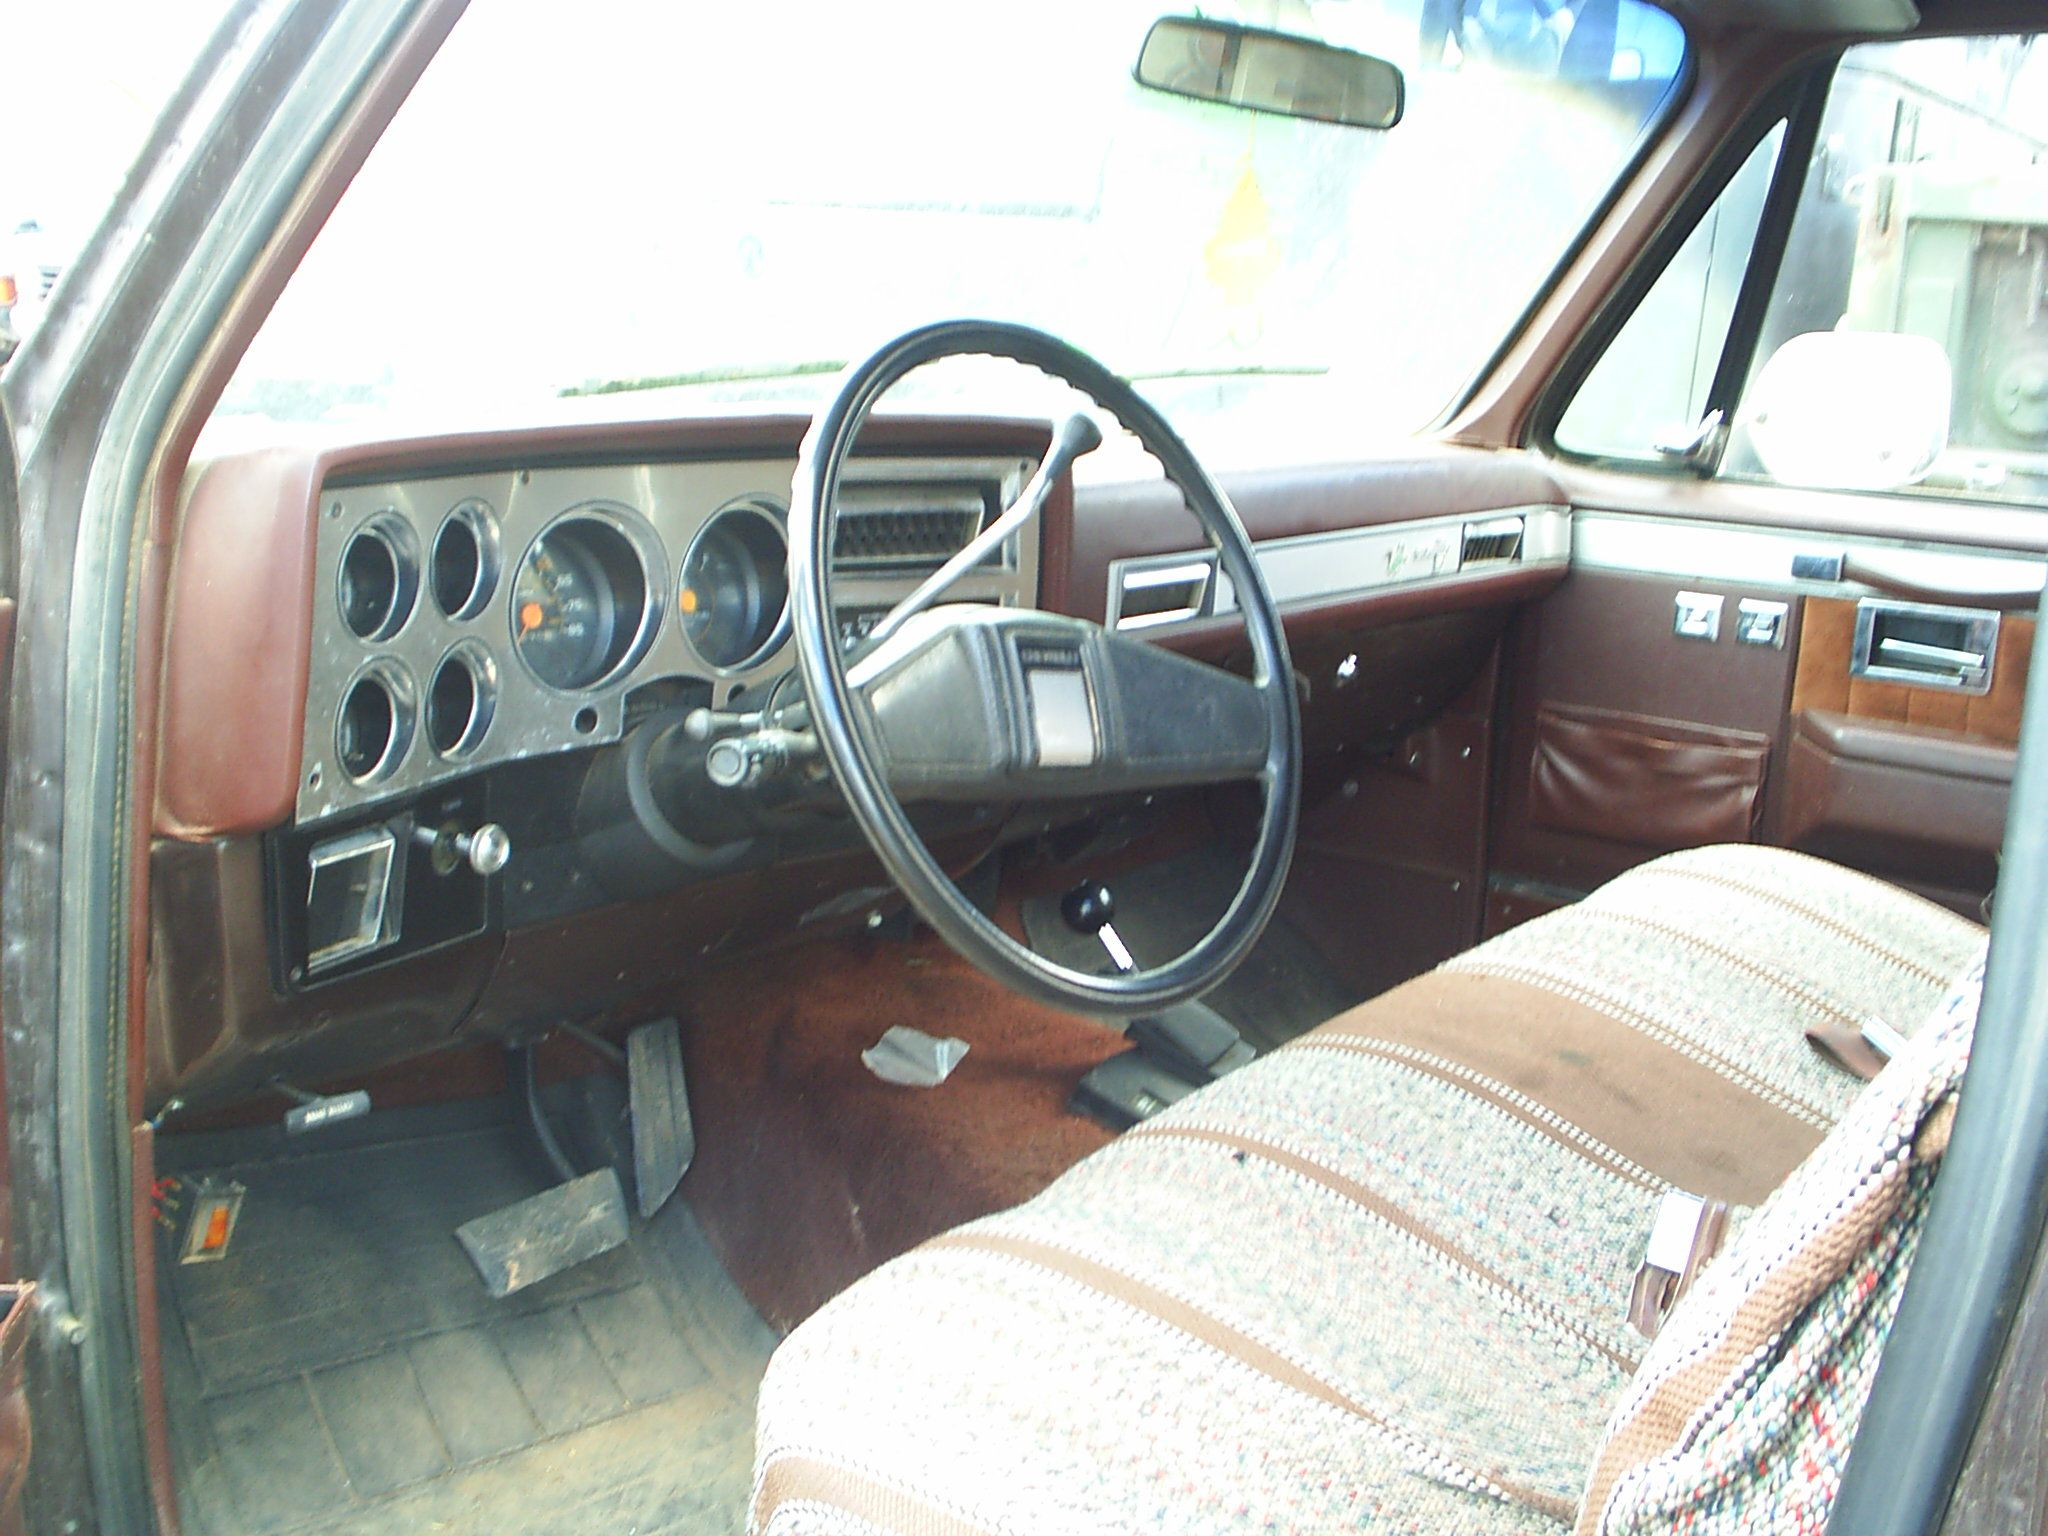 1984 Chevy Silverado Interior This Is Very Similar To The Truck My Dad Had While We Were Farming Truck Interior Chevy Trucks Chevy